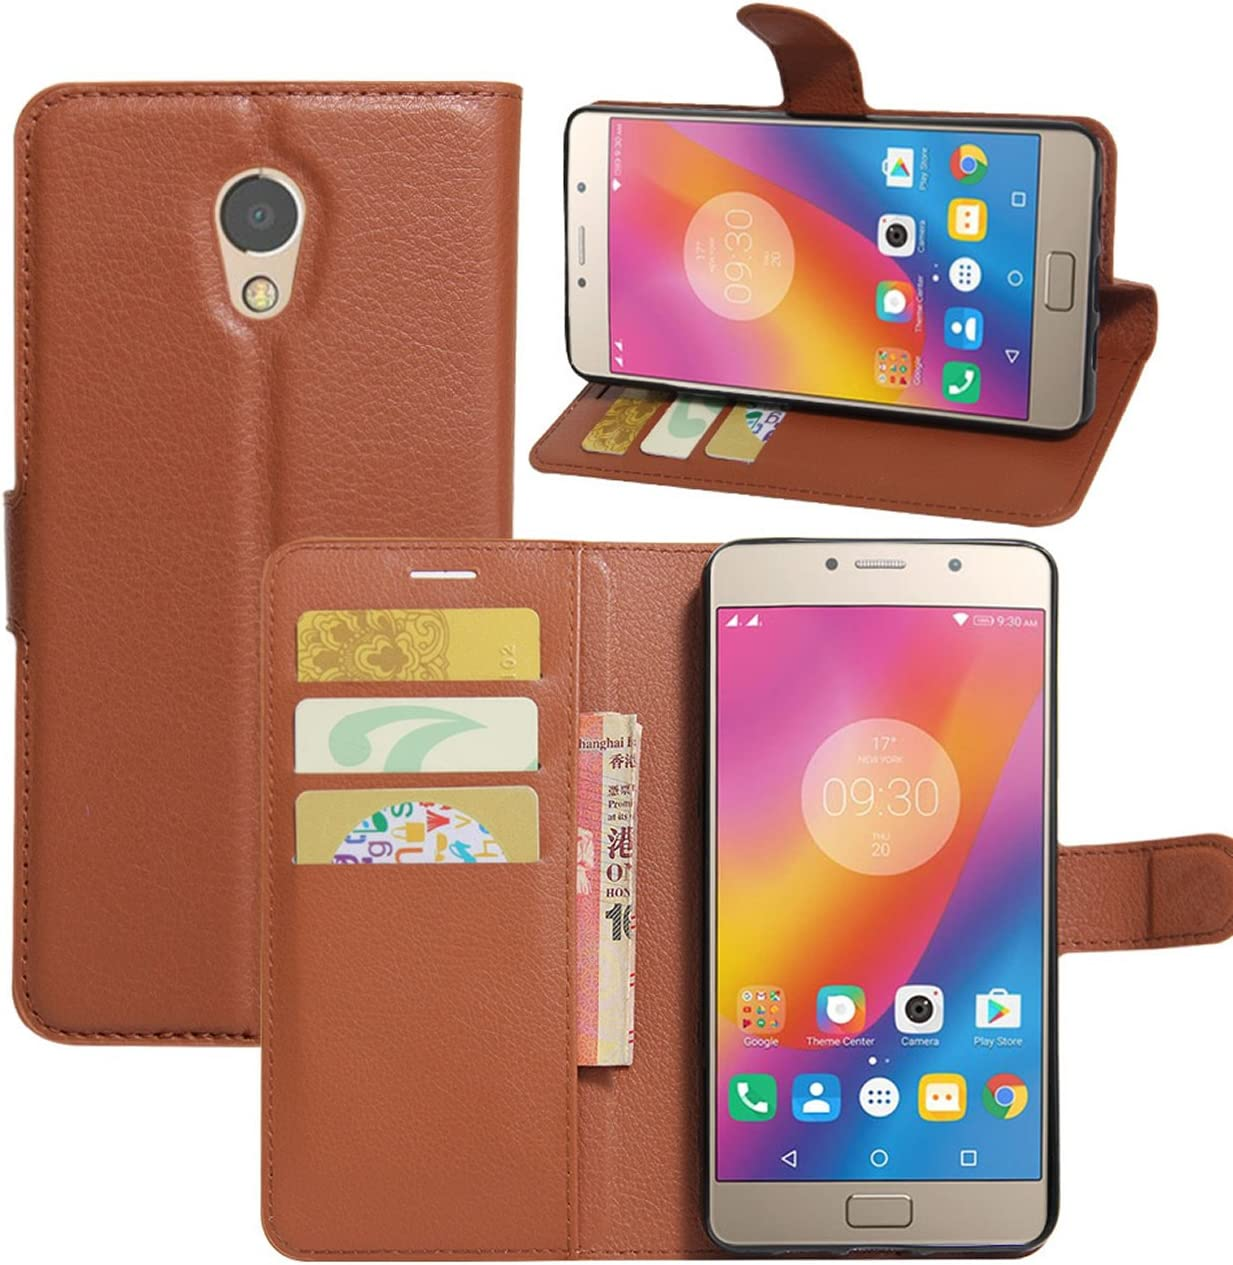 Lenovo Vibe P2 Case, Fettion Premium PU Leather Wallet Phone Protective Flip Case Cover with Stand Card Holder for Lenovo Vibe P2 Smartphone (Brown)